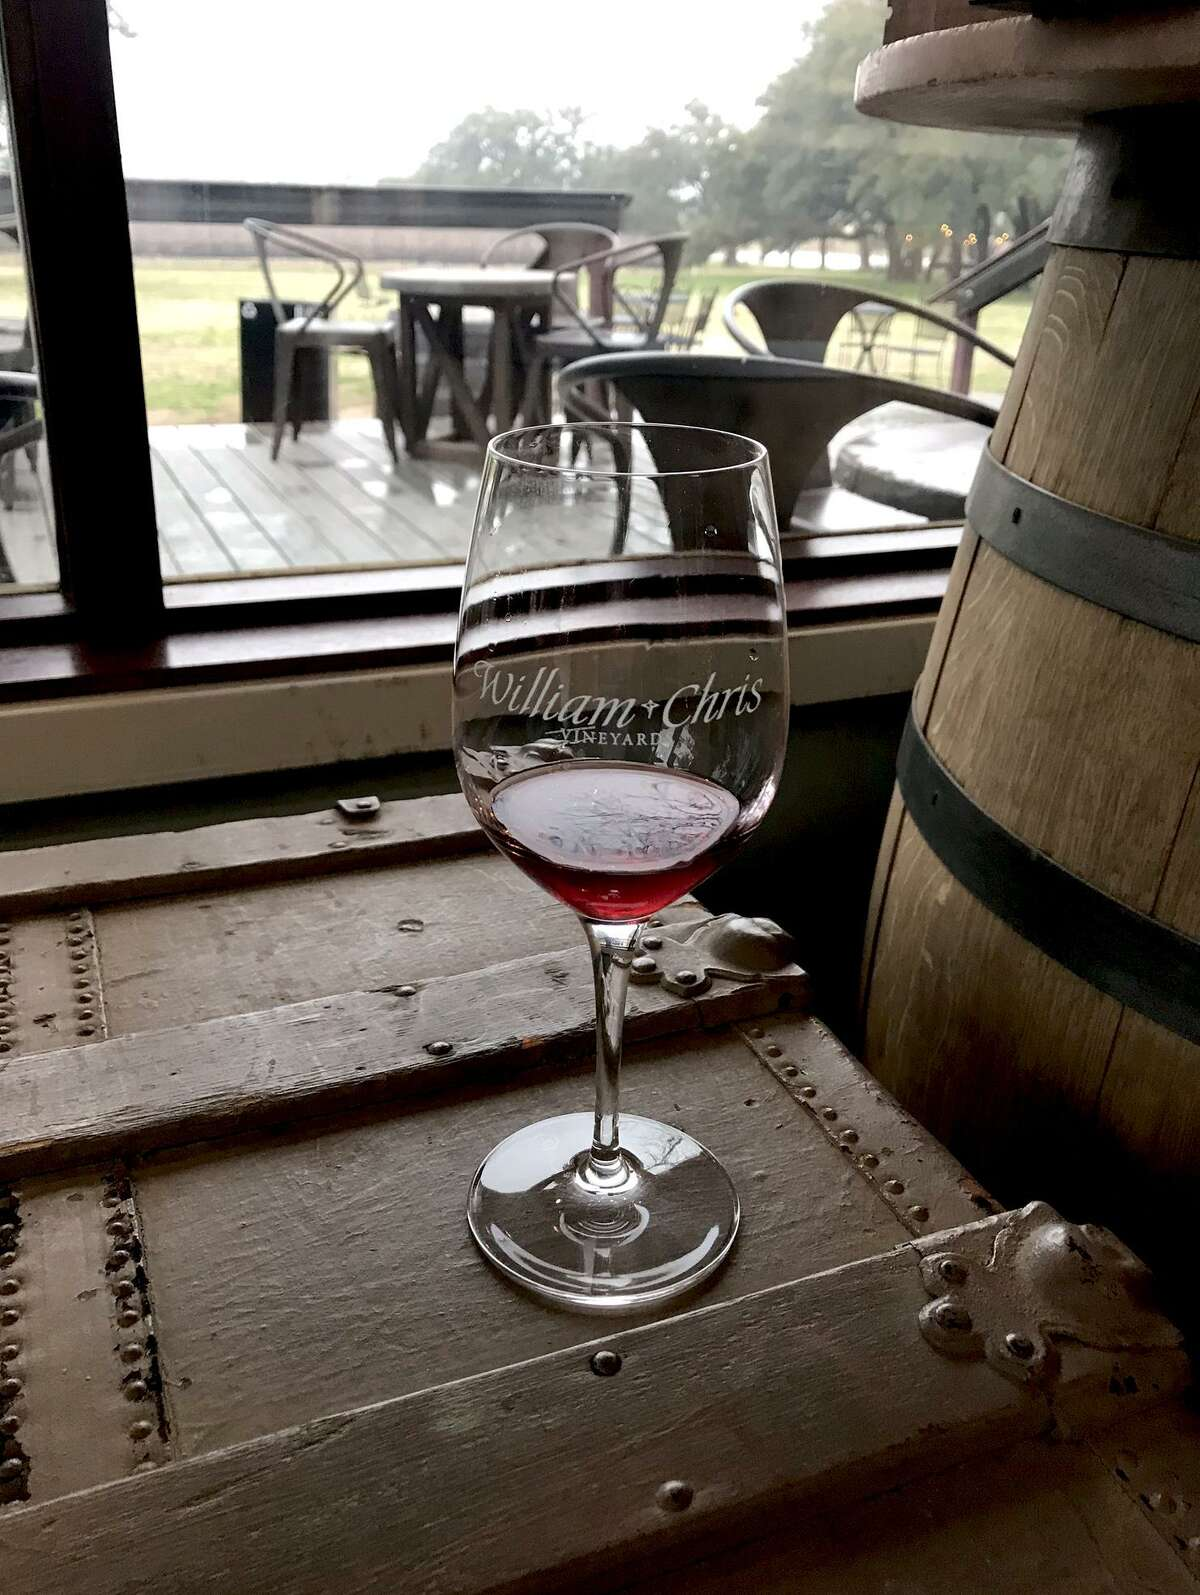 William Chris Vineyards was raked the best Hill Country winery for 2019.